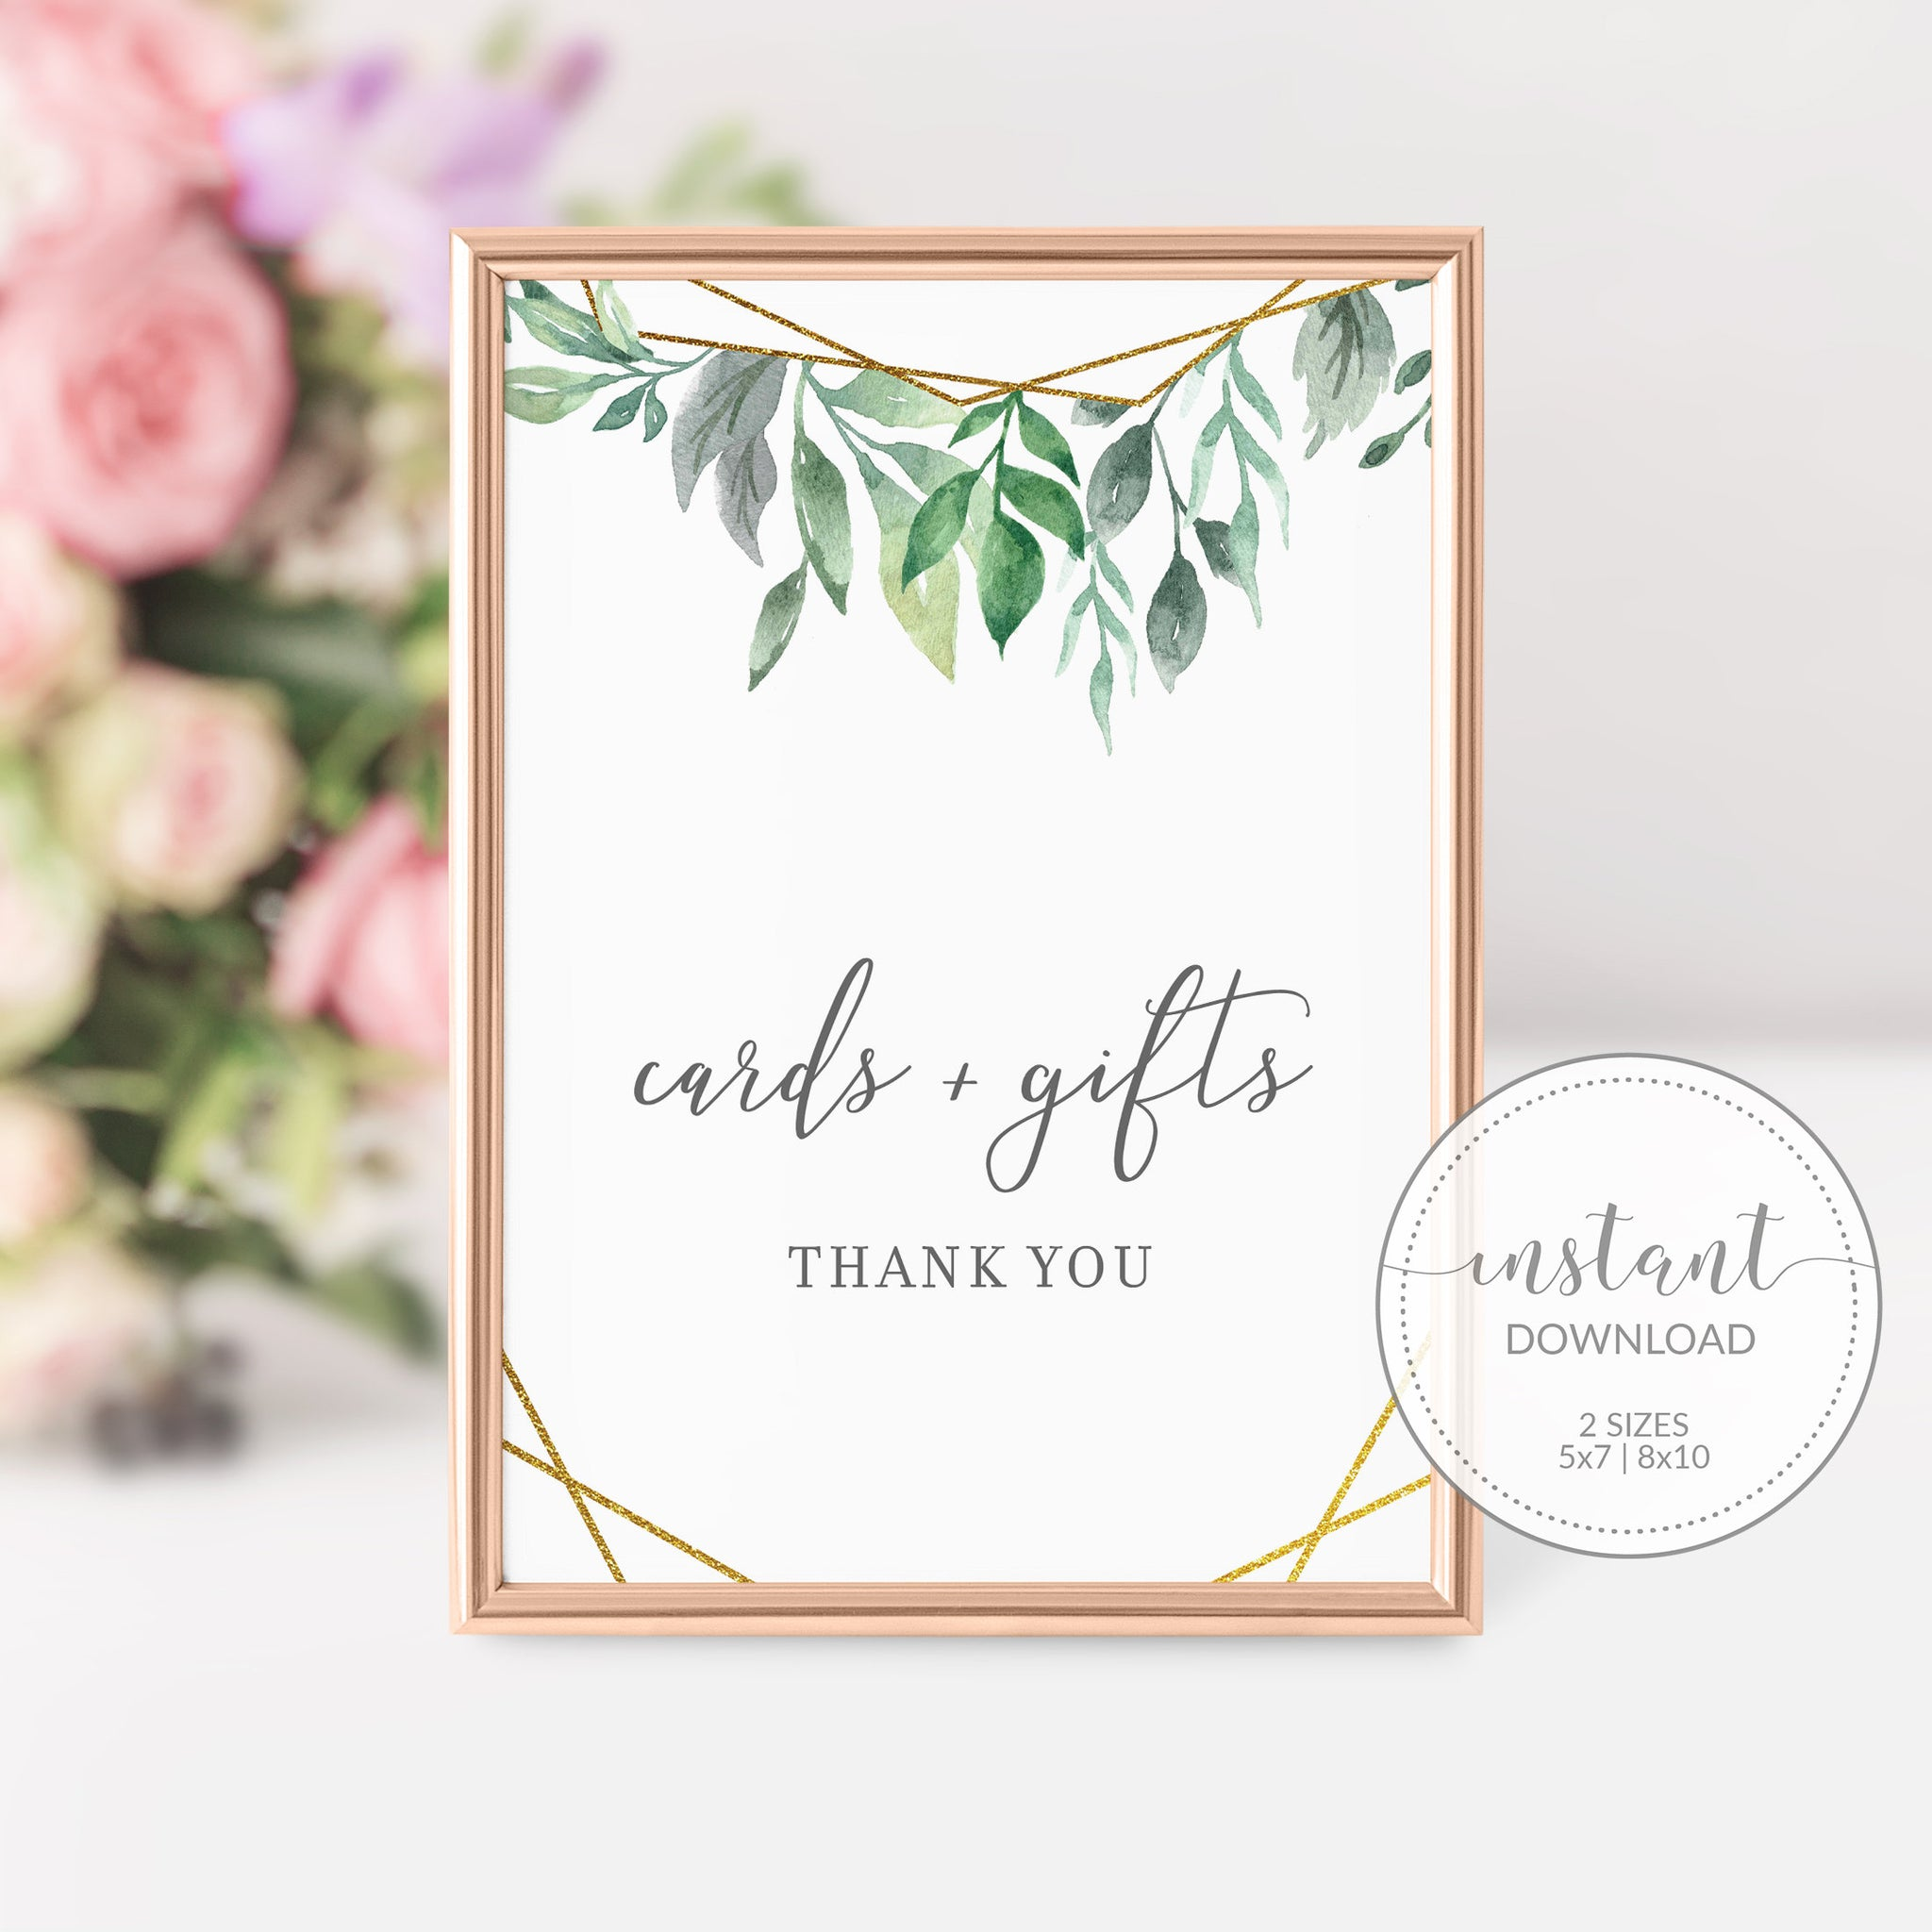 Geometric Gold Greenery Cards and Gifts Printable Sign INSTANT DOWNLOAD, Bridal Shower, Baby Shower, Wedding Decorations Supplies - GFG100 - @PlumPolkaDot